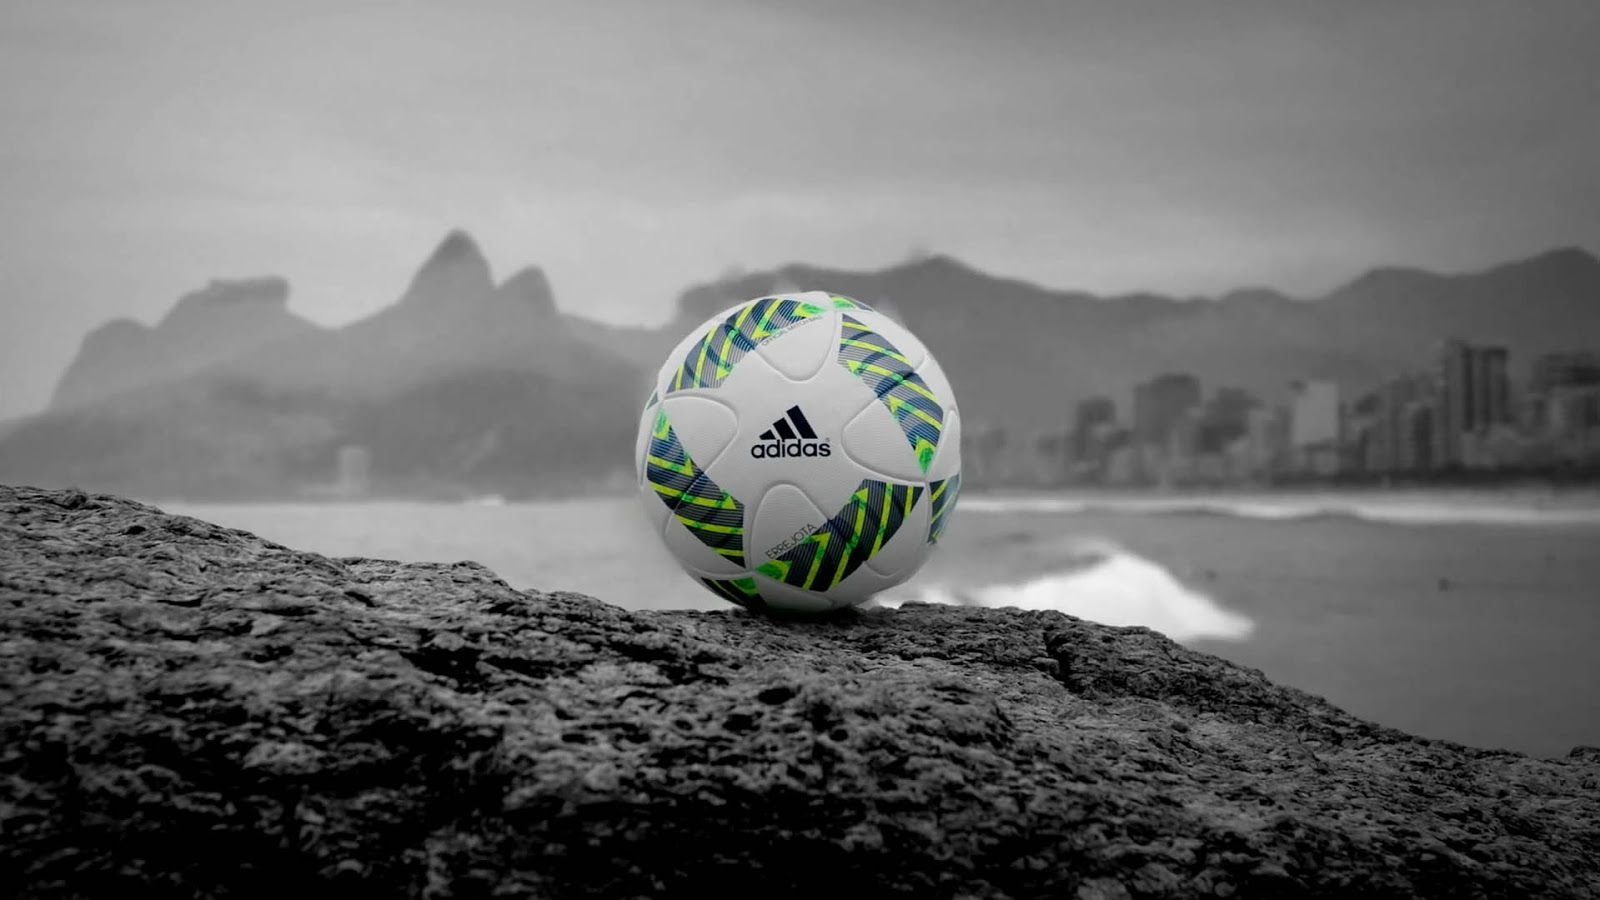 ff7c98de1 Adidas Errejota 2016 Ball Released Football adidas Errejota Ekstraklasa OMB  AX7582 Adidas Errejota 2016 Ball Released - Footy Headlines ...